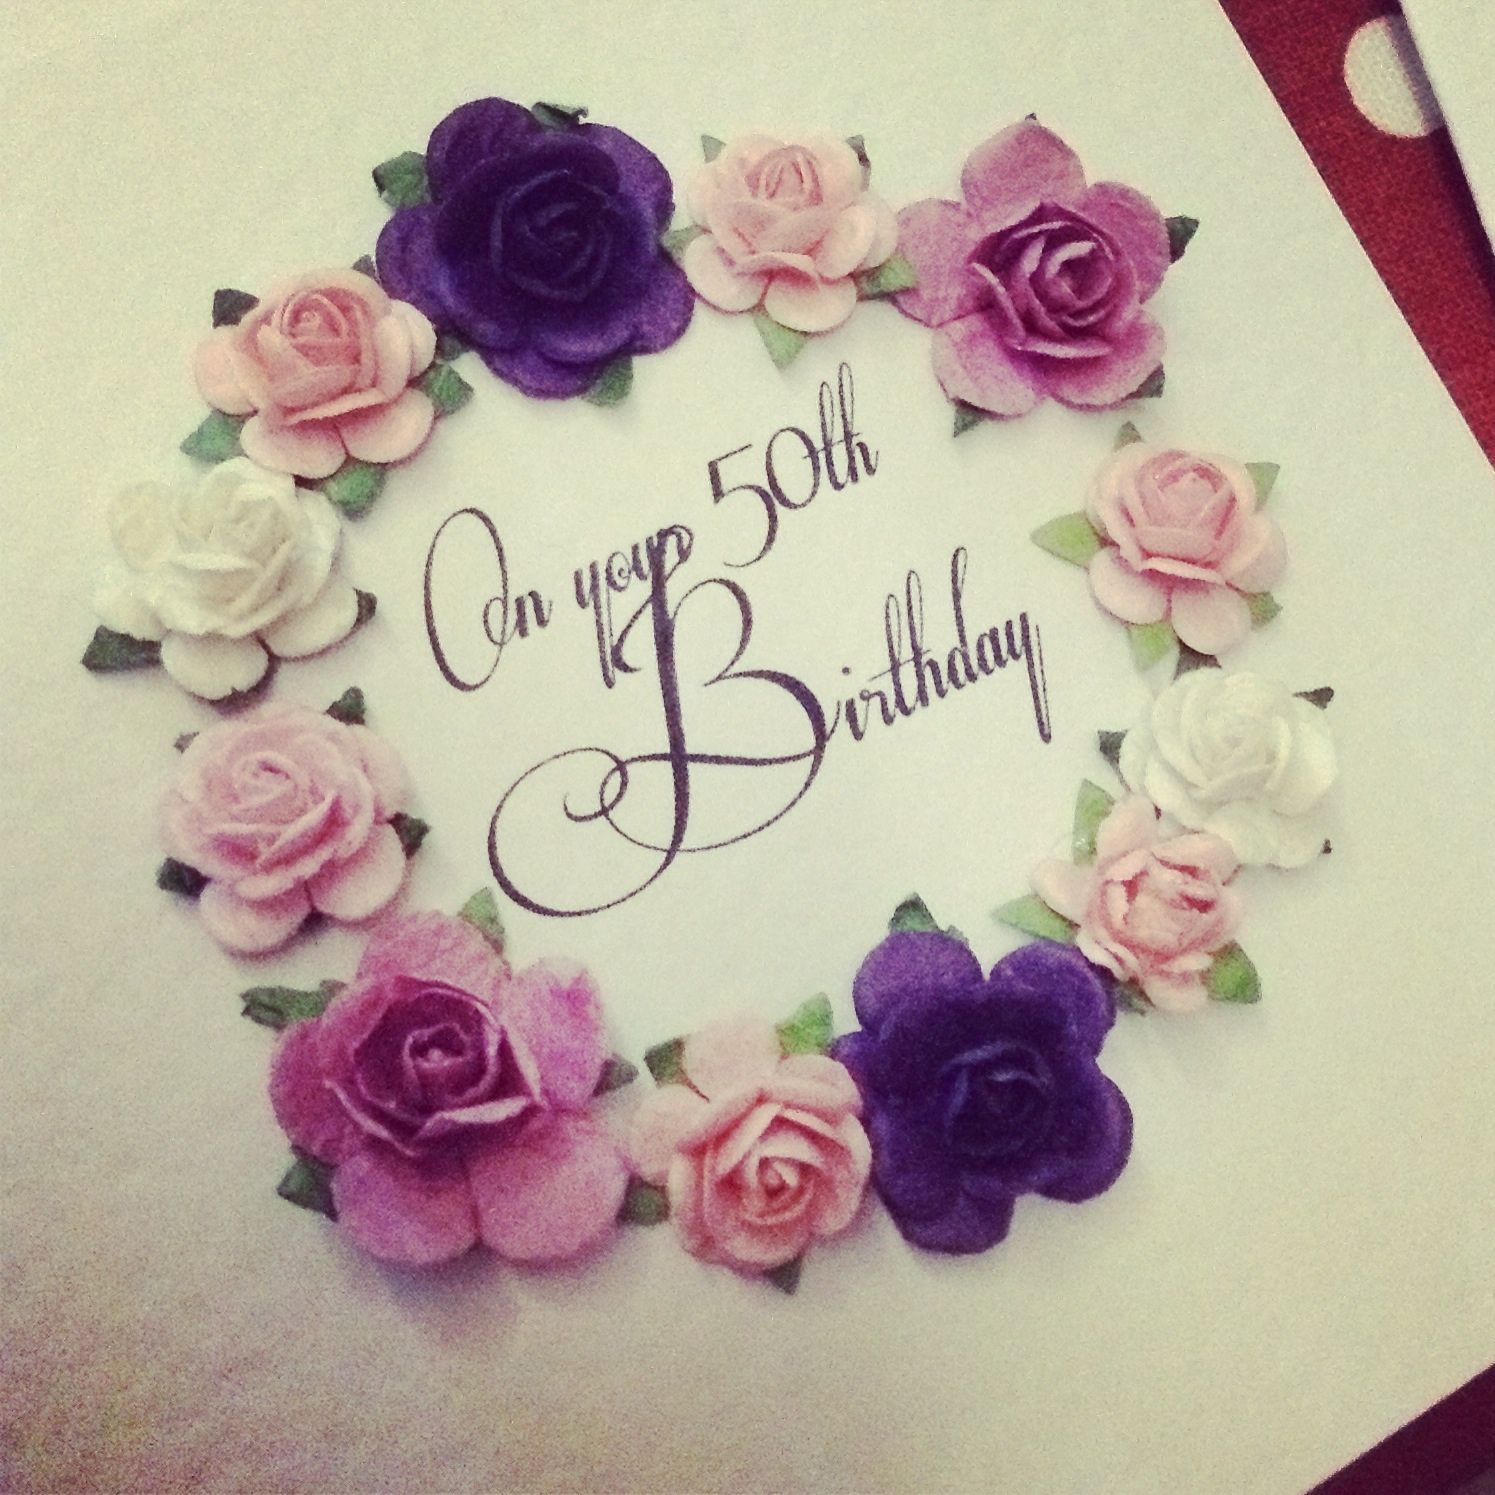 Handmade happy 50th birthday greeting card by osonia designs using handmade happy 50th birthday greeting card by osonia designs using beautiful paper roses kristyandbryce Image collections